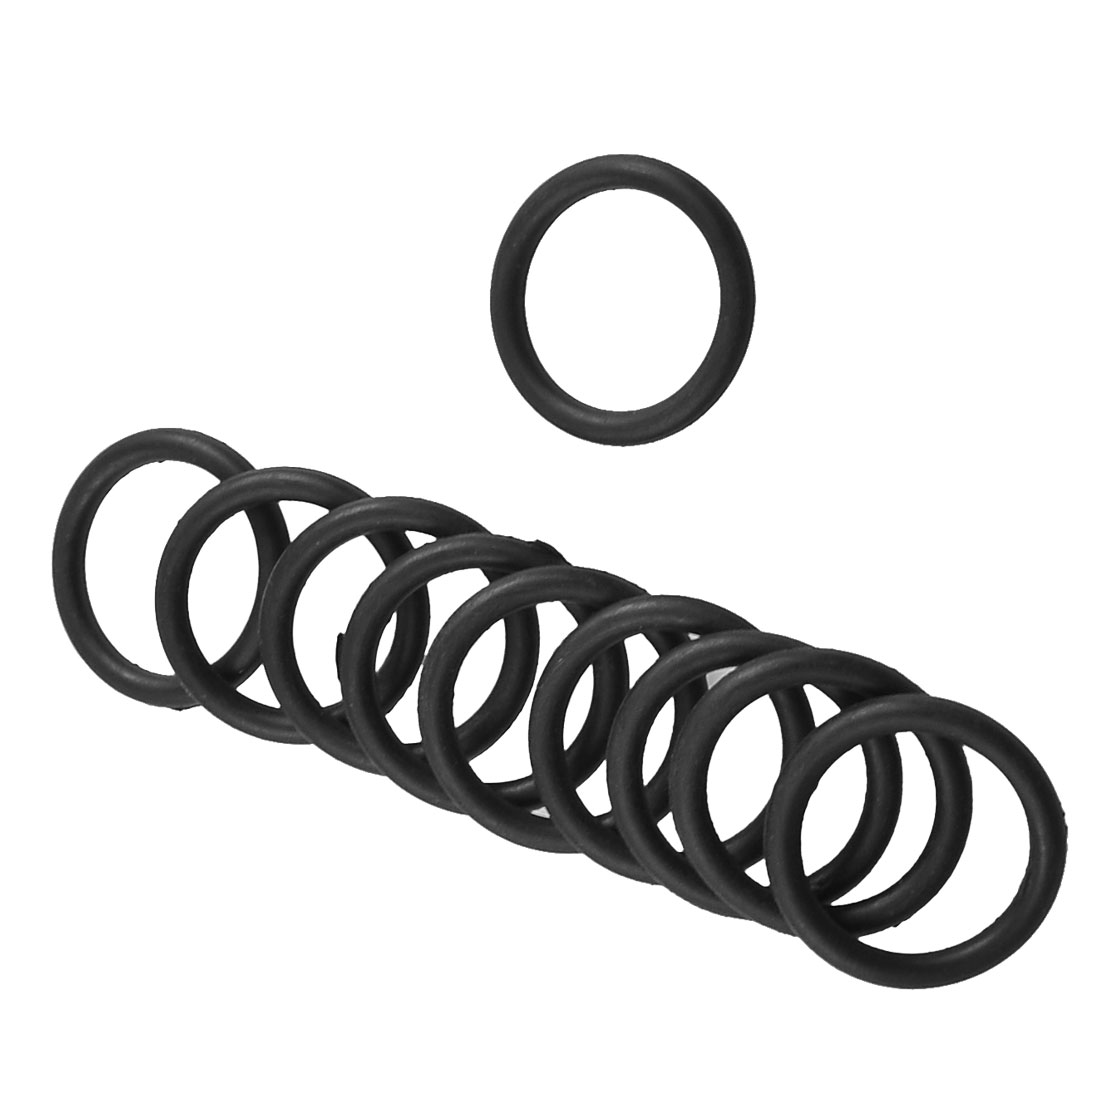 10 Pcs 25mm x 18mm x 3.1mm Mechanical Rubber O Ring Oil Seal Gaskets